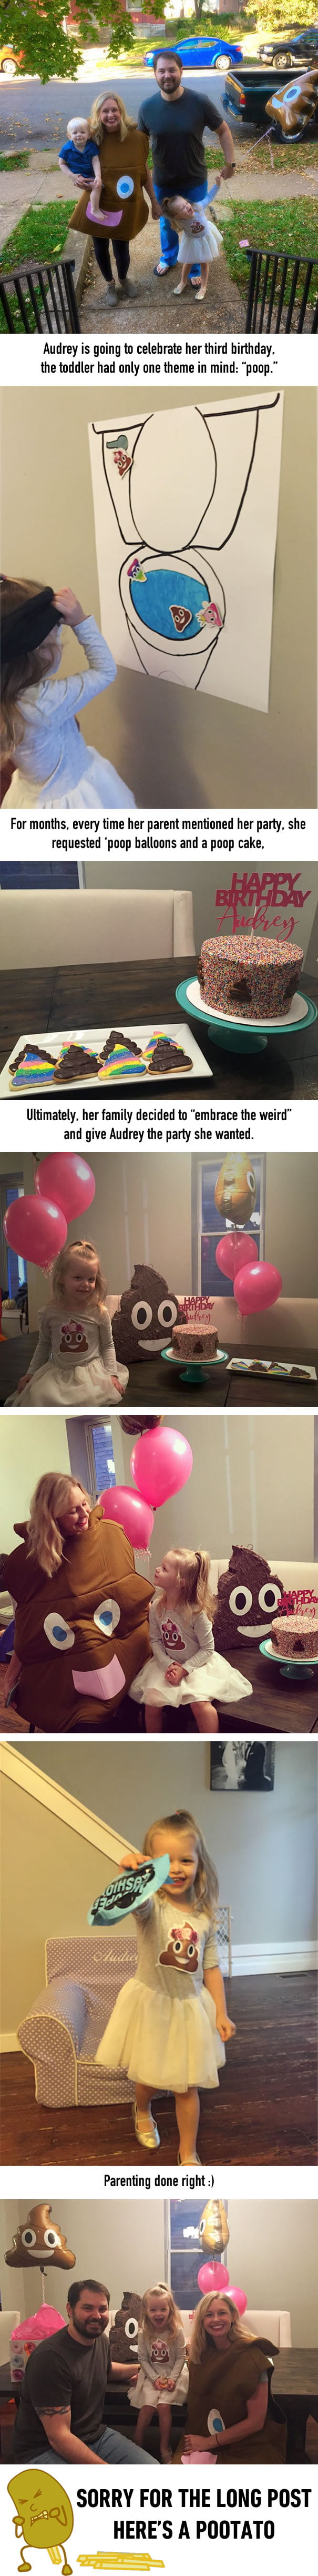 This Little Girl Wanted A Poop-Themed Birthday Party, So Her Parents Threw Her One